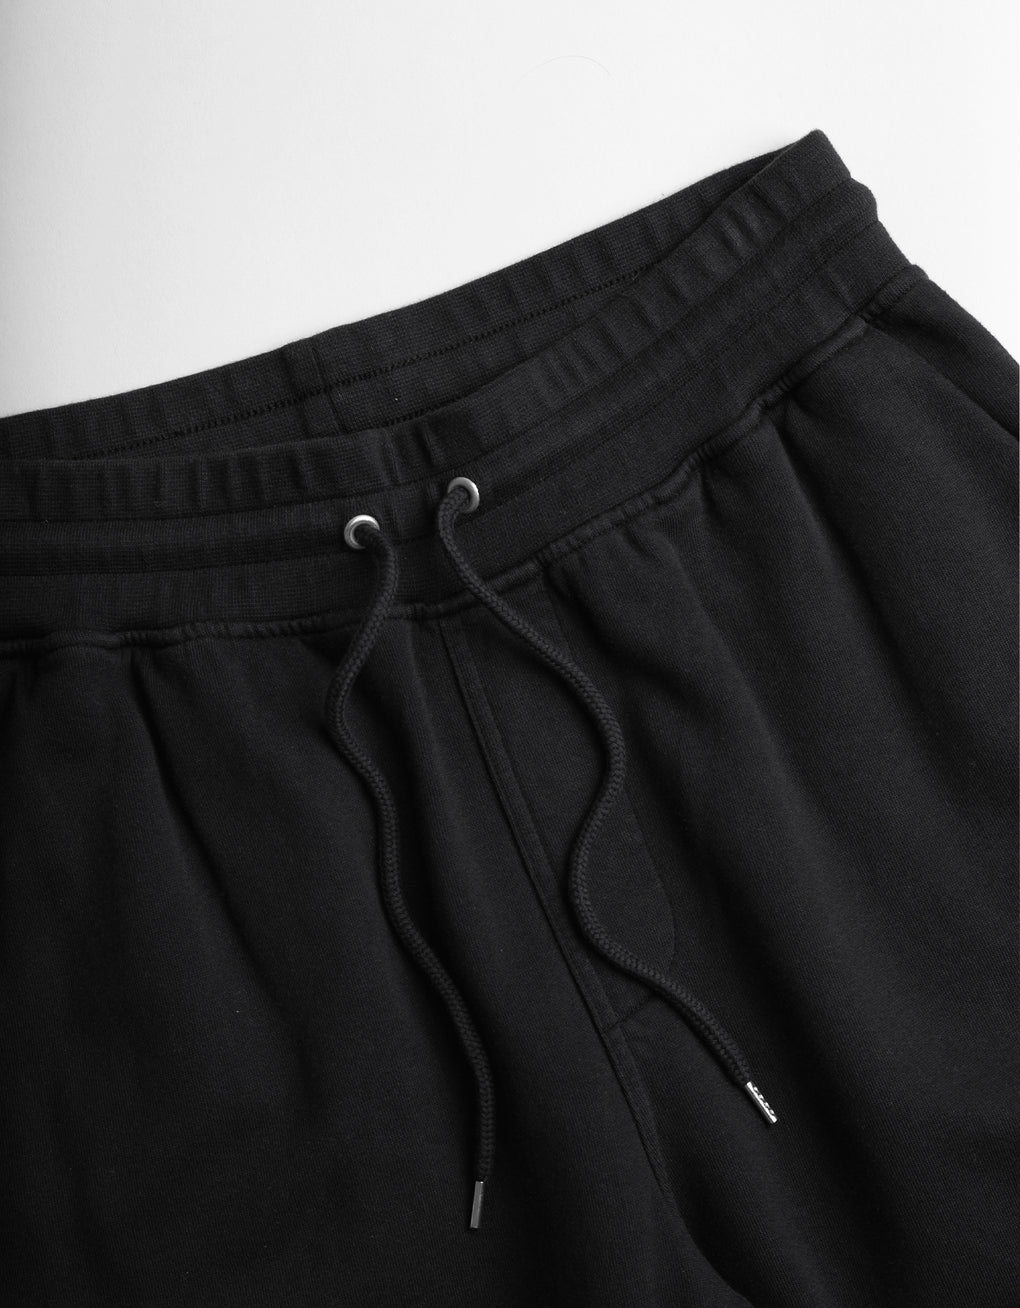 Colorful Standard Classic Organic Sweatshorts Shorts Deep Black